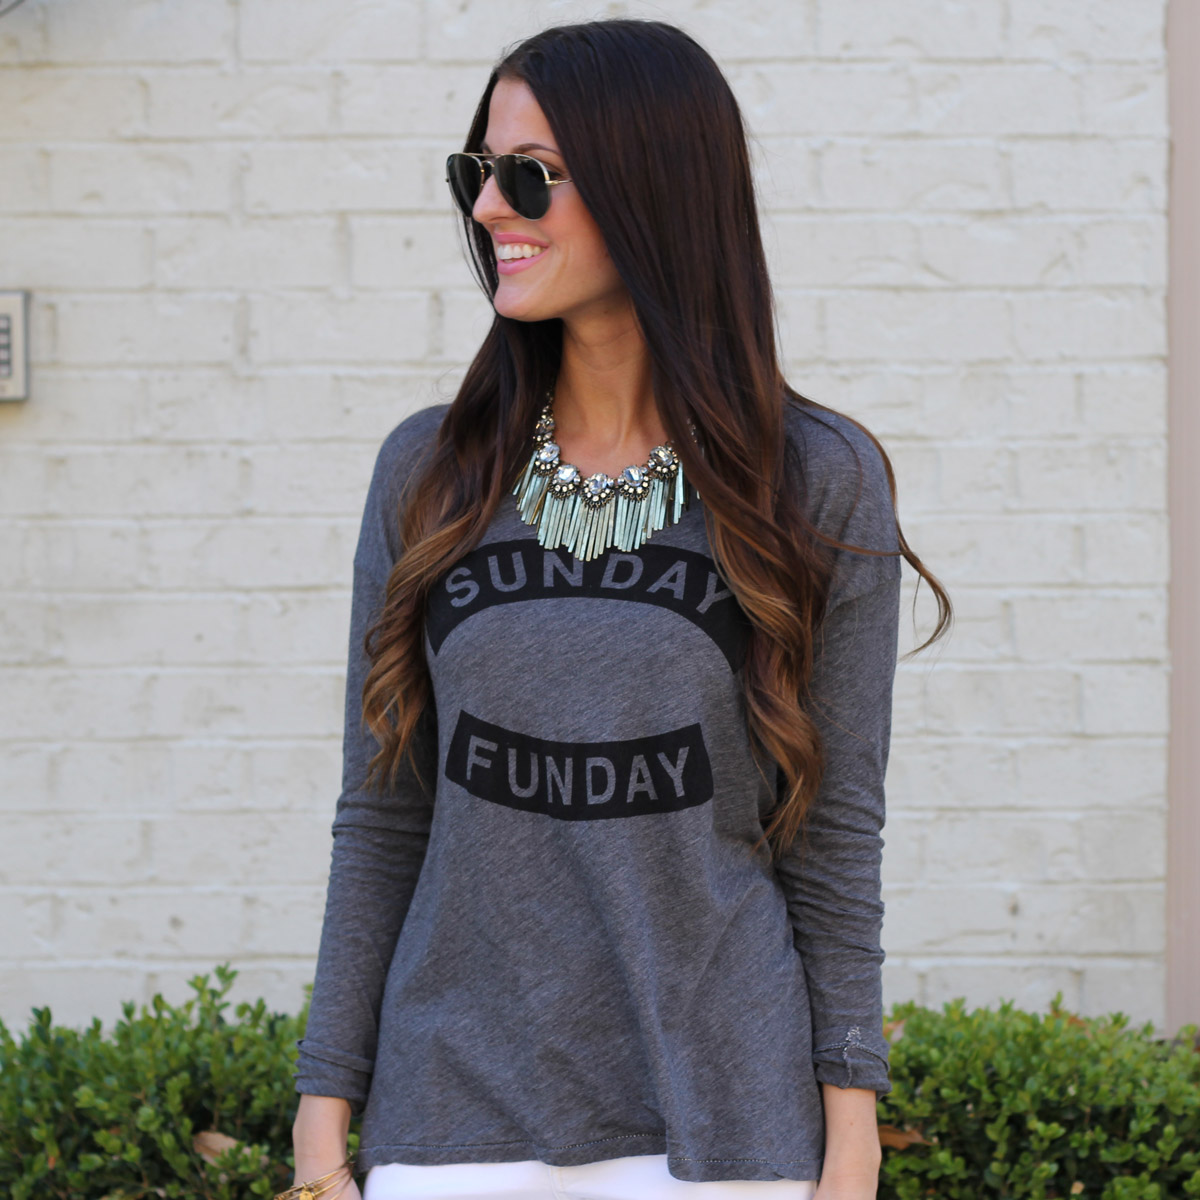 Sunday Funday Graphic Top and Statement Necklace